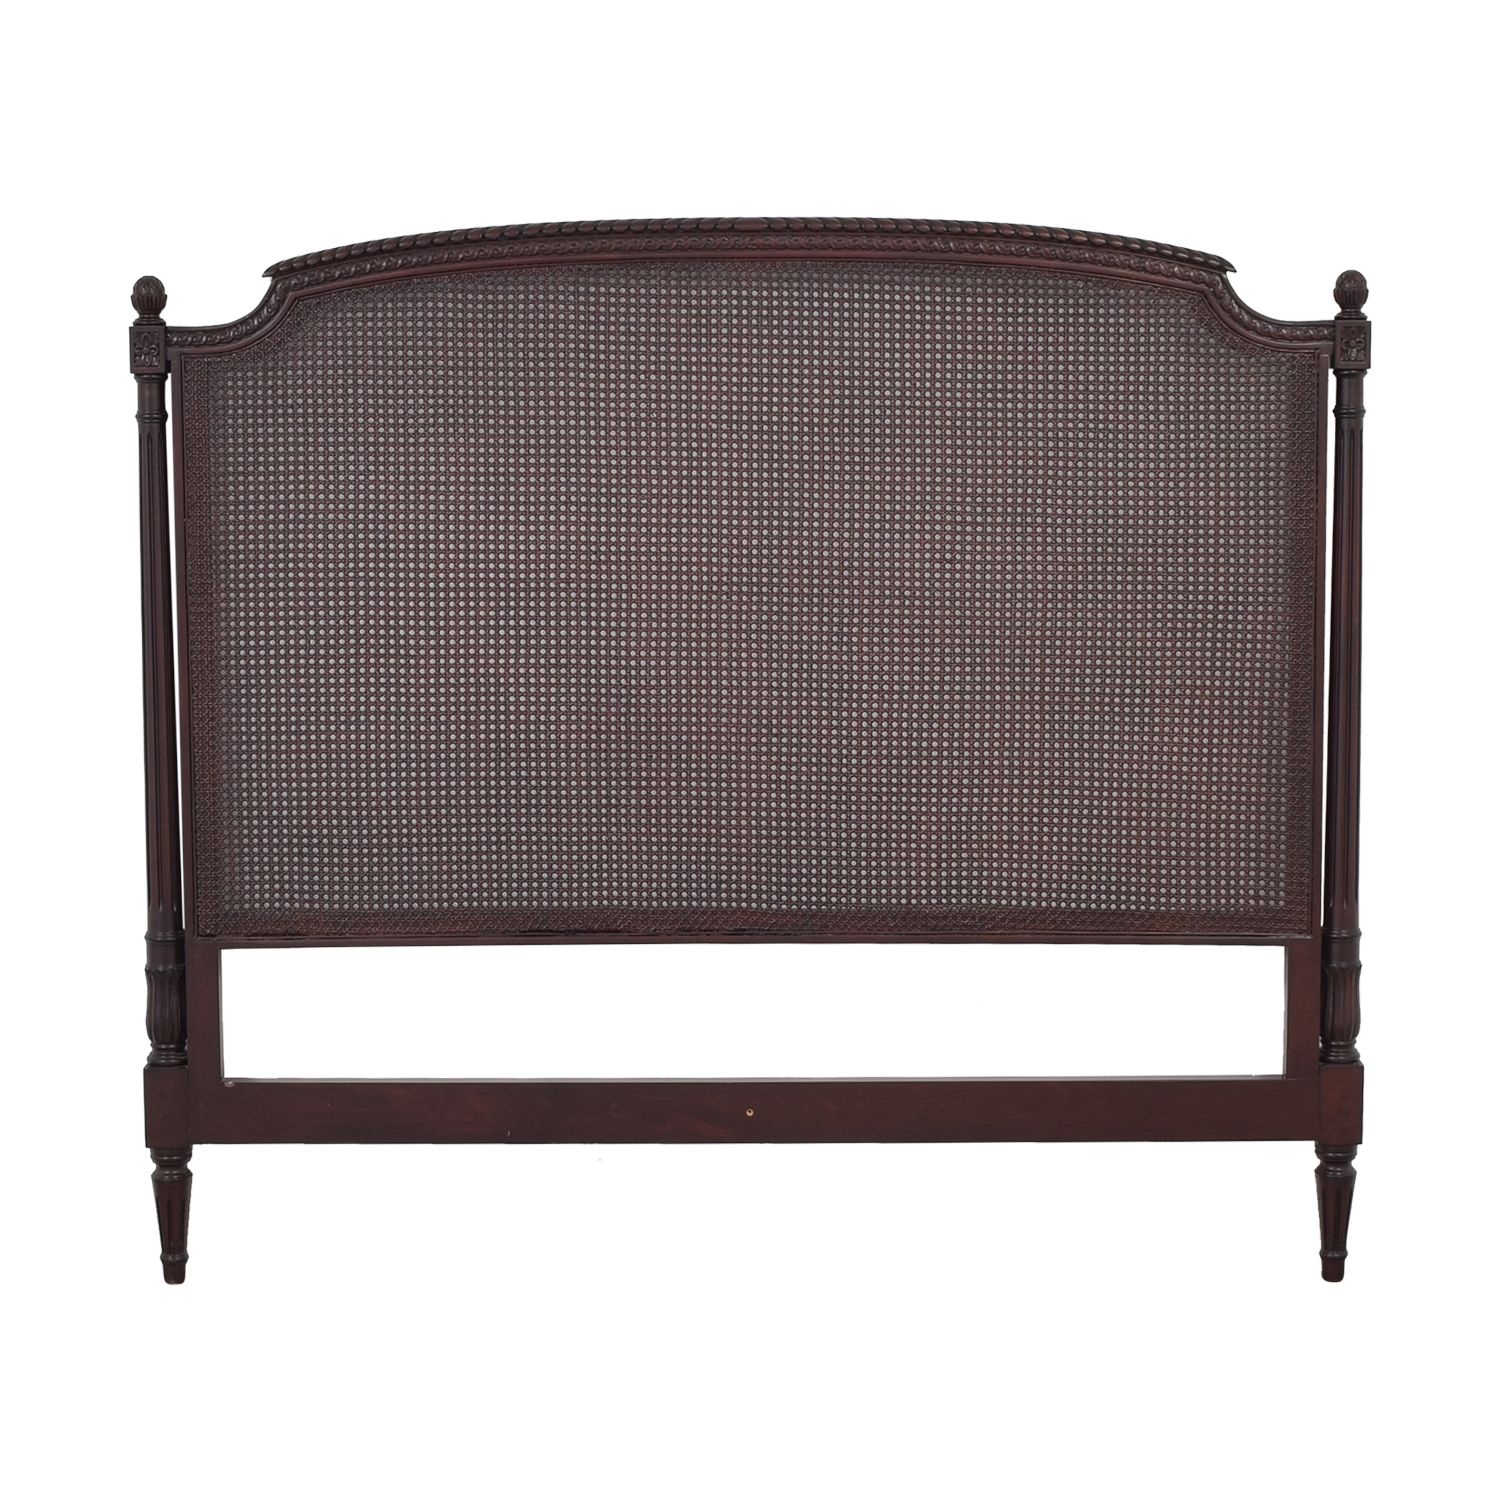 Cane Queen Headboard on sale